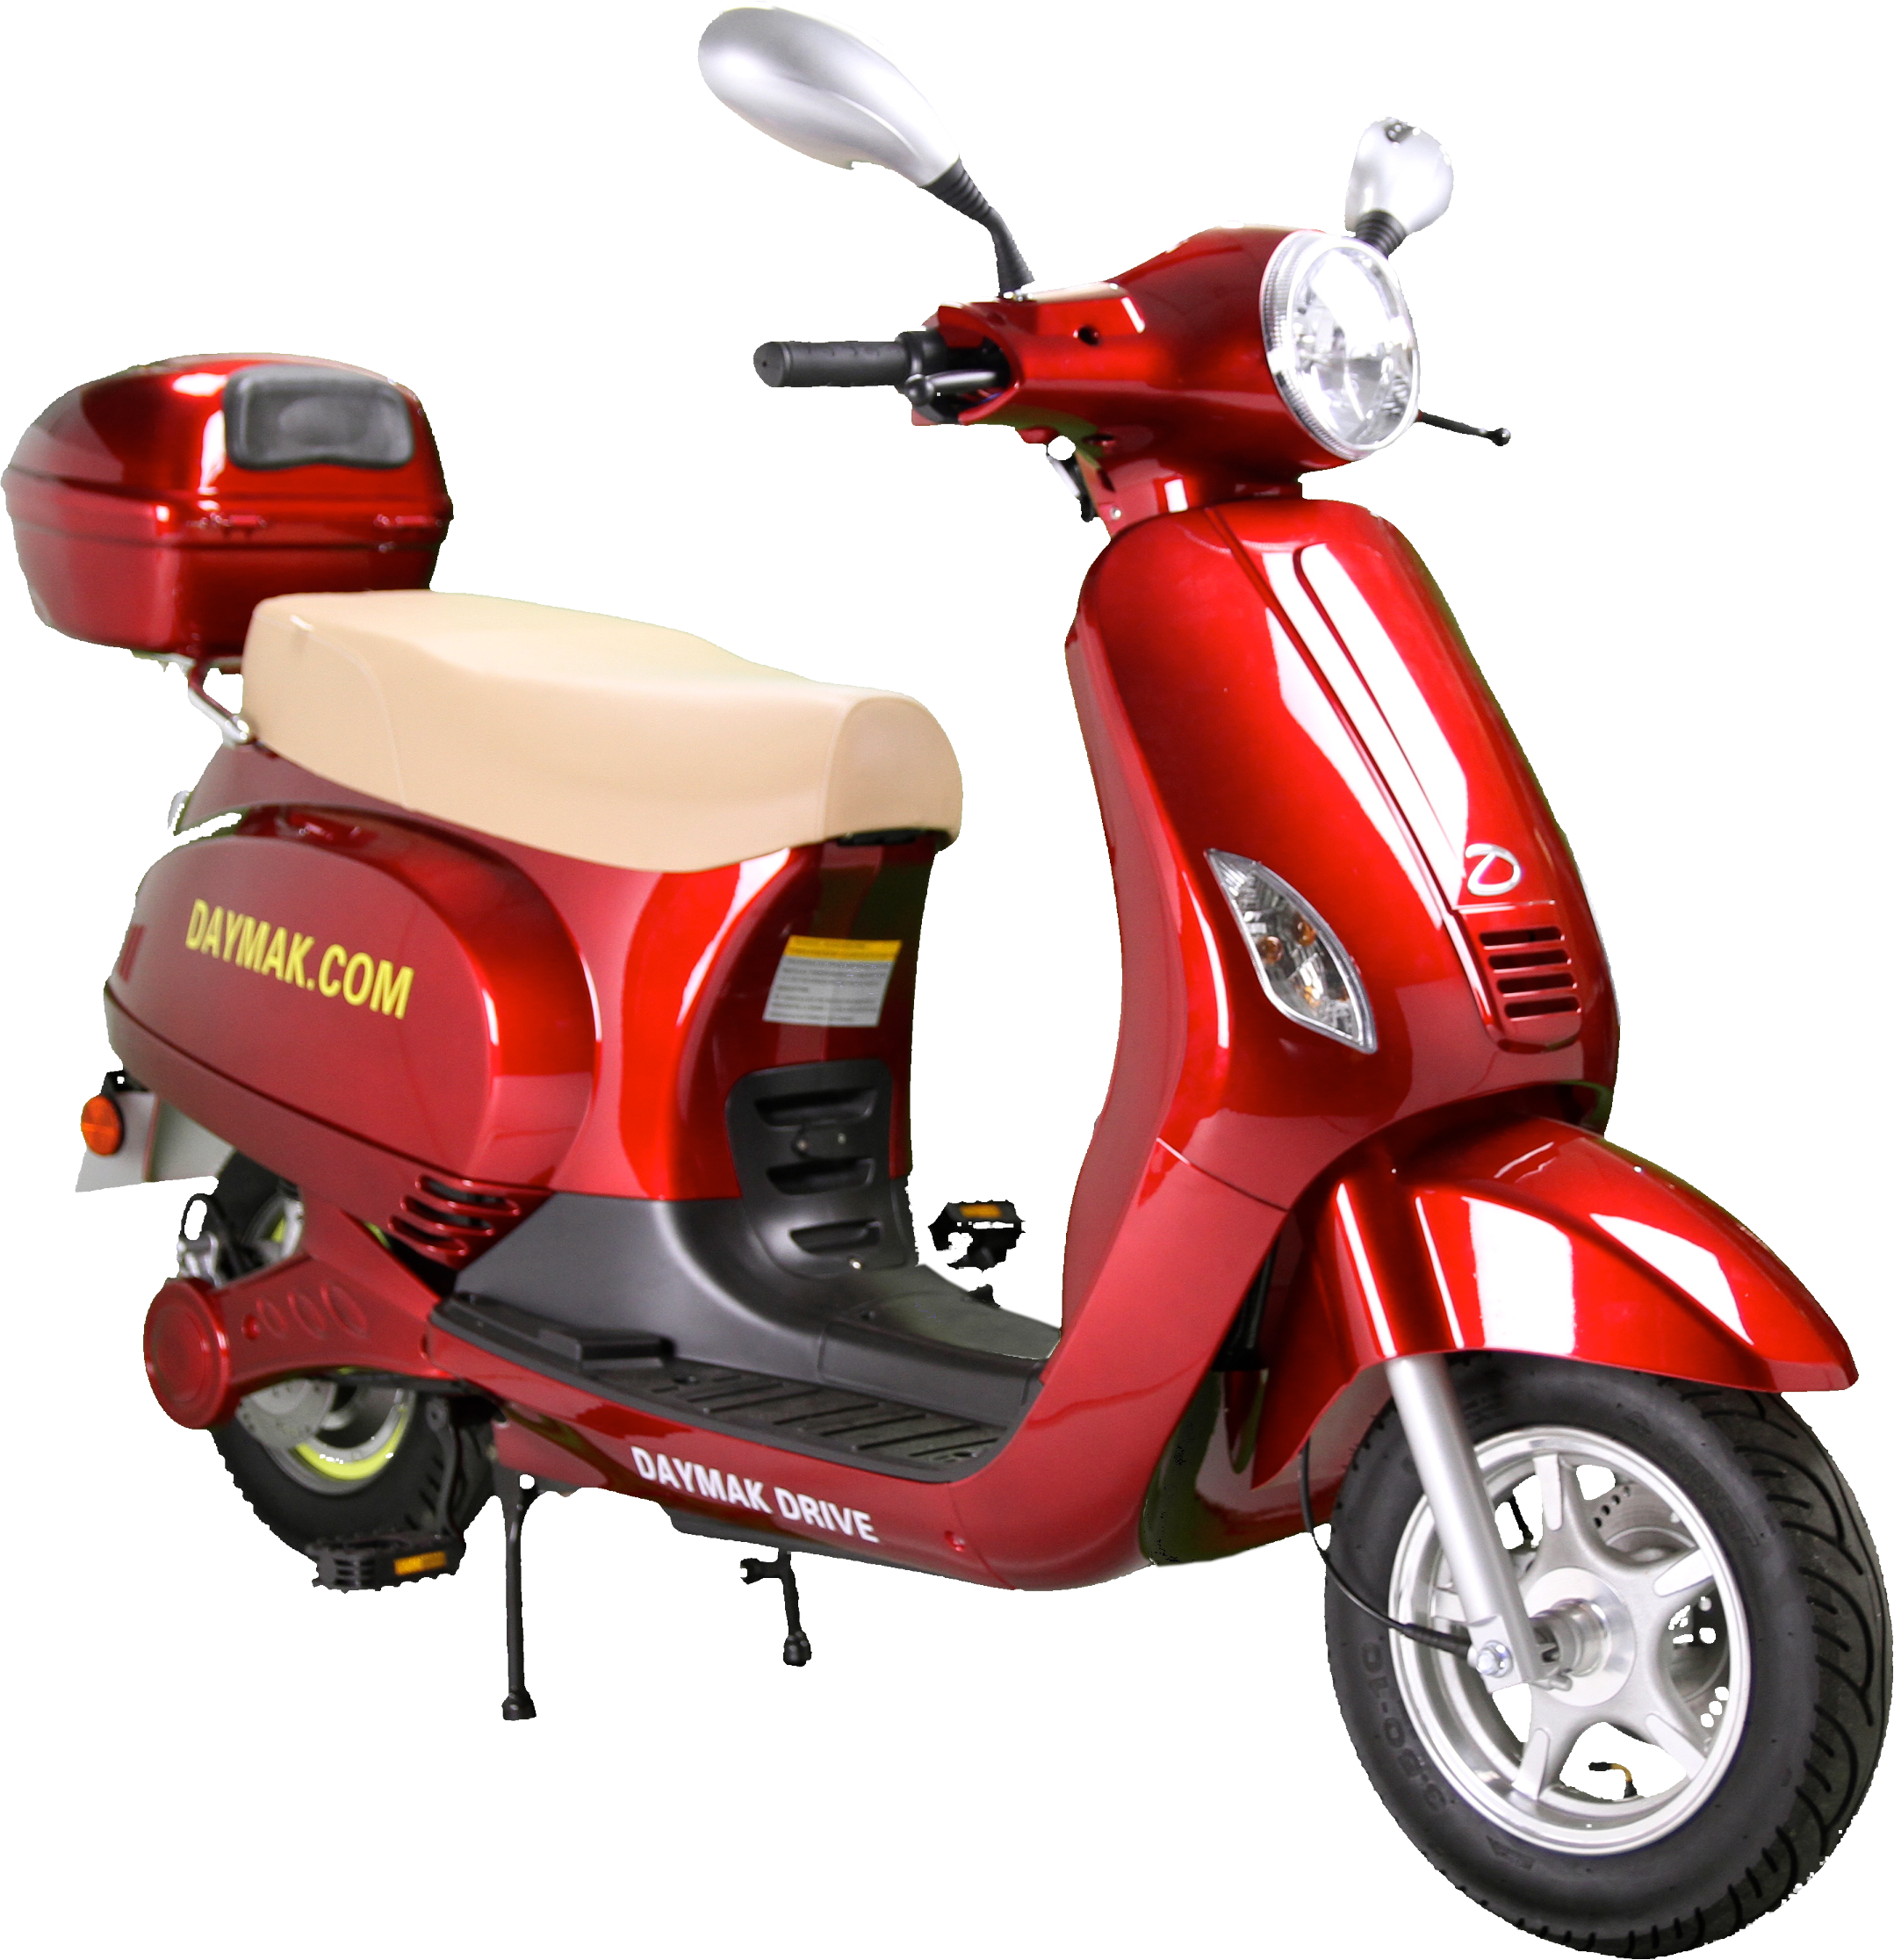 Red scooter. Hd png image clipart